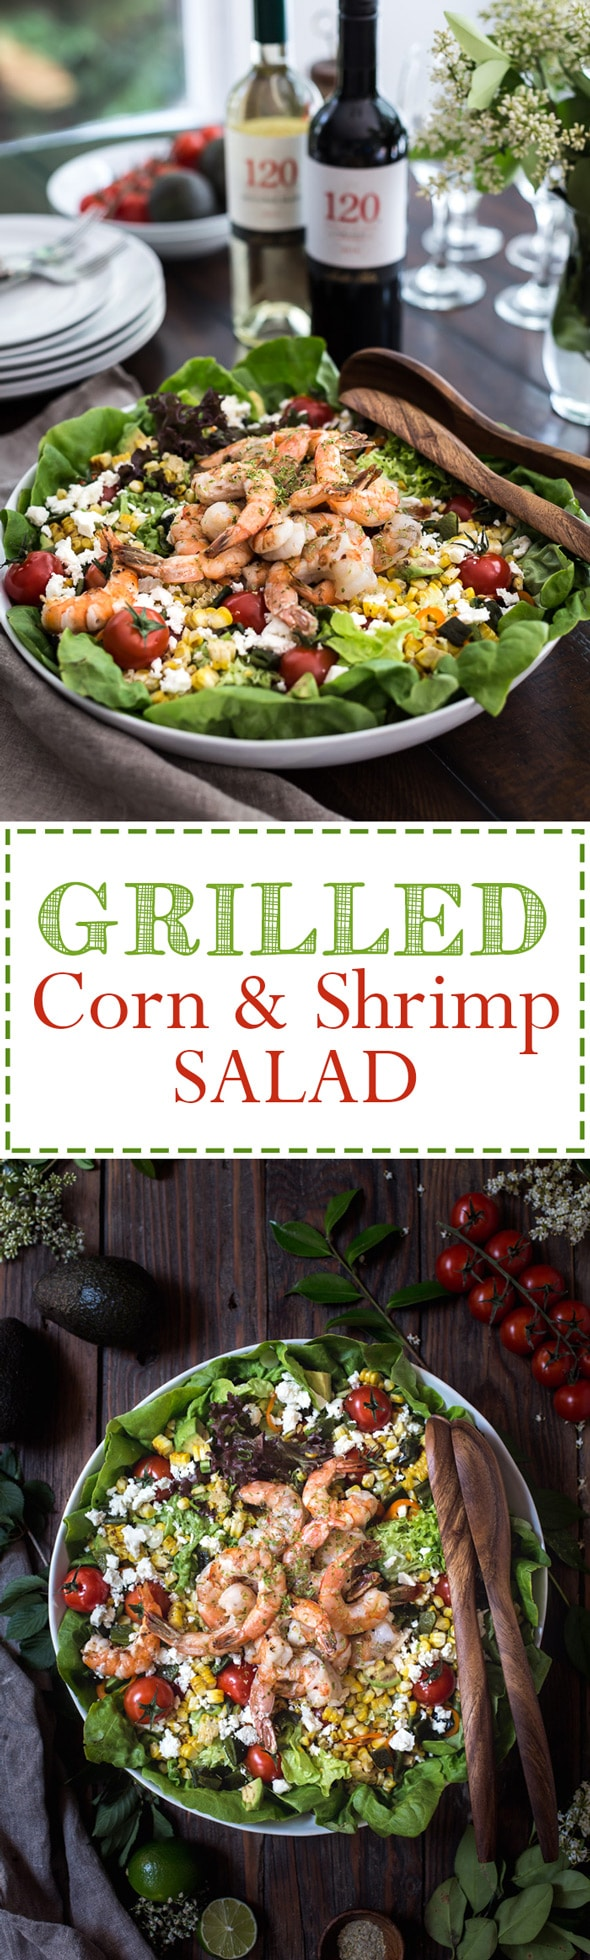 Grilled Shrimp and Corn Salad - A great summer salad dish and a post about tips on grilling shrimp and corn with ease. Up your grilling game and make this salad this summer.